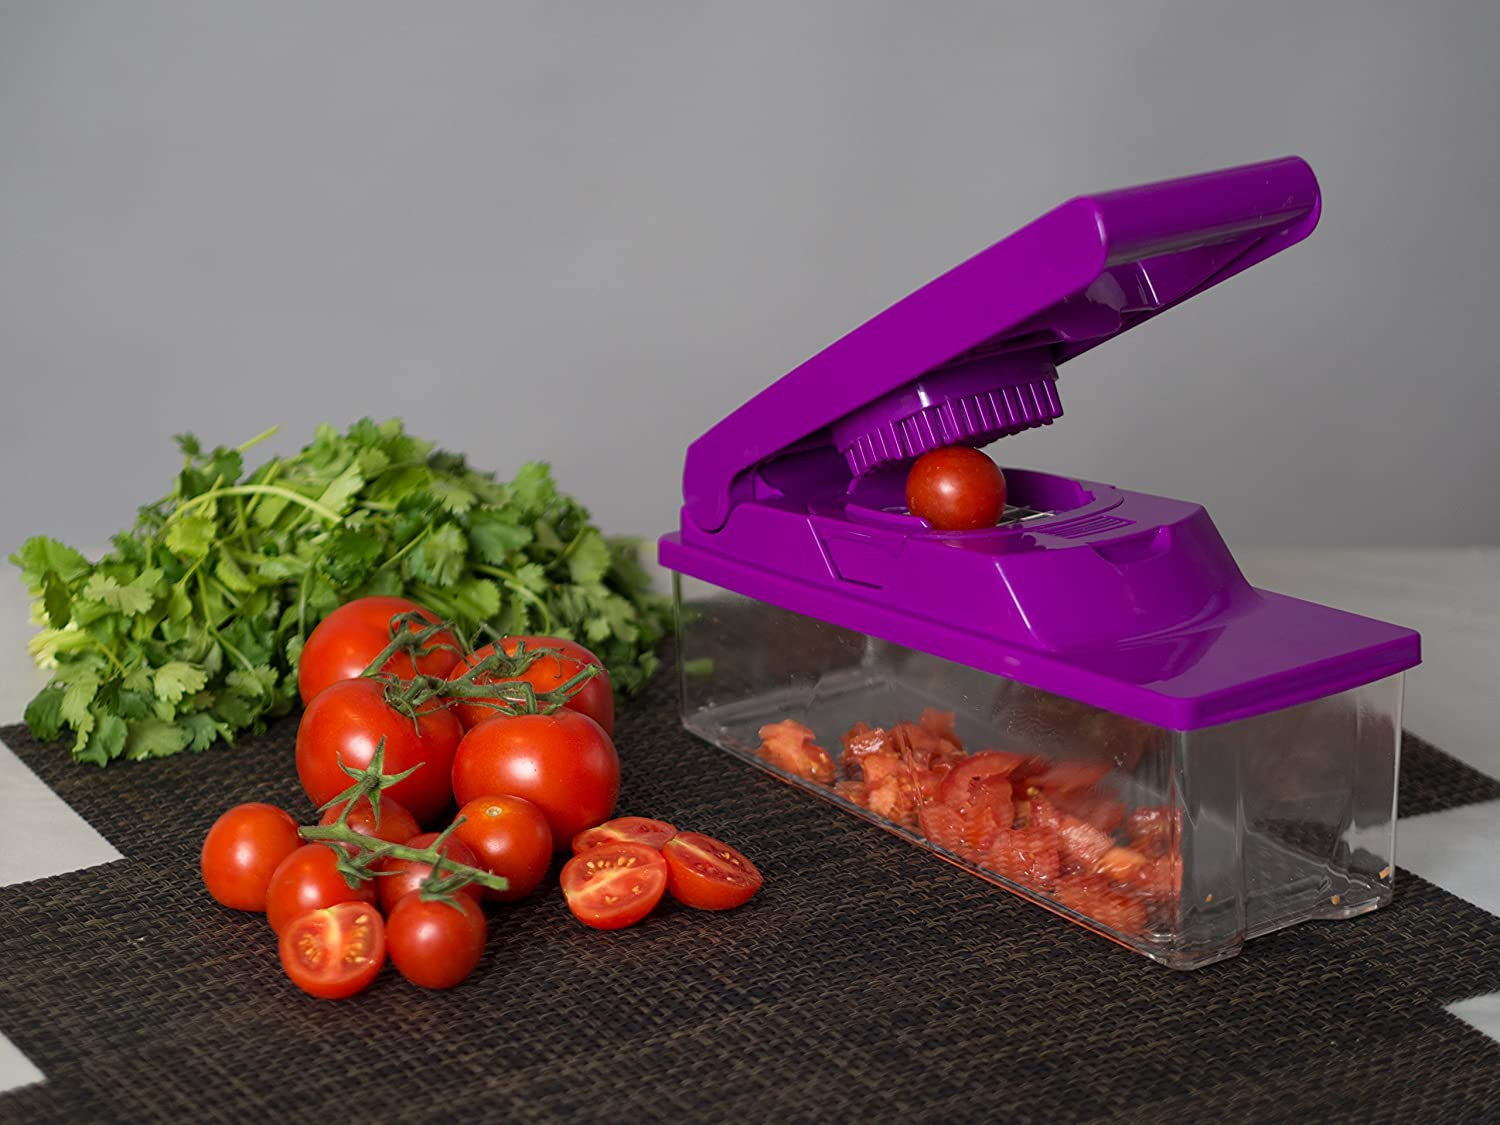 Bliss Our Home Premium Vegetable and Fruit Chopper, Multifunctional Slicer, Grater, and Dicer